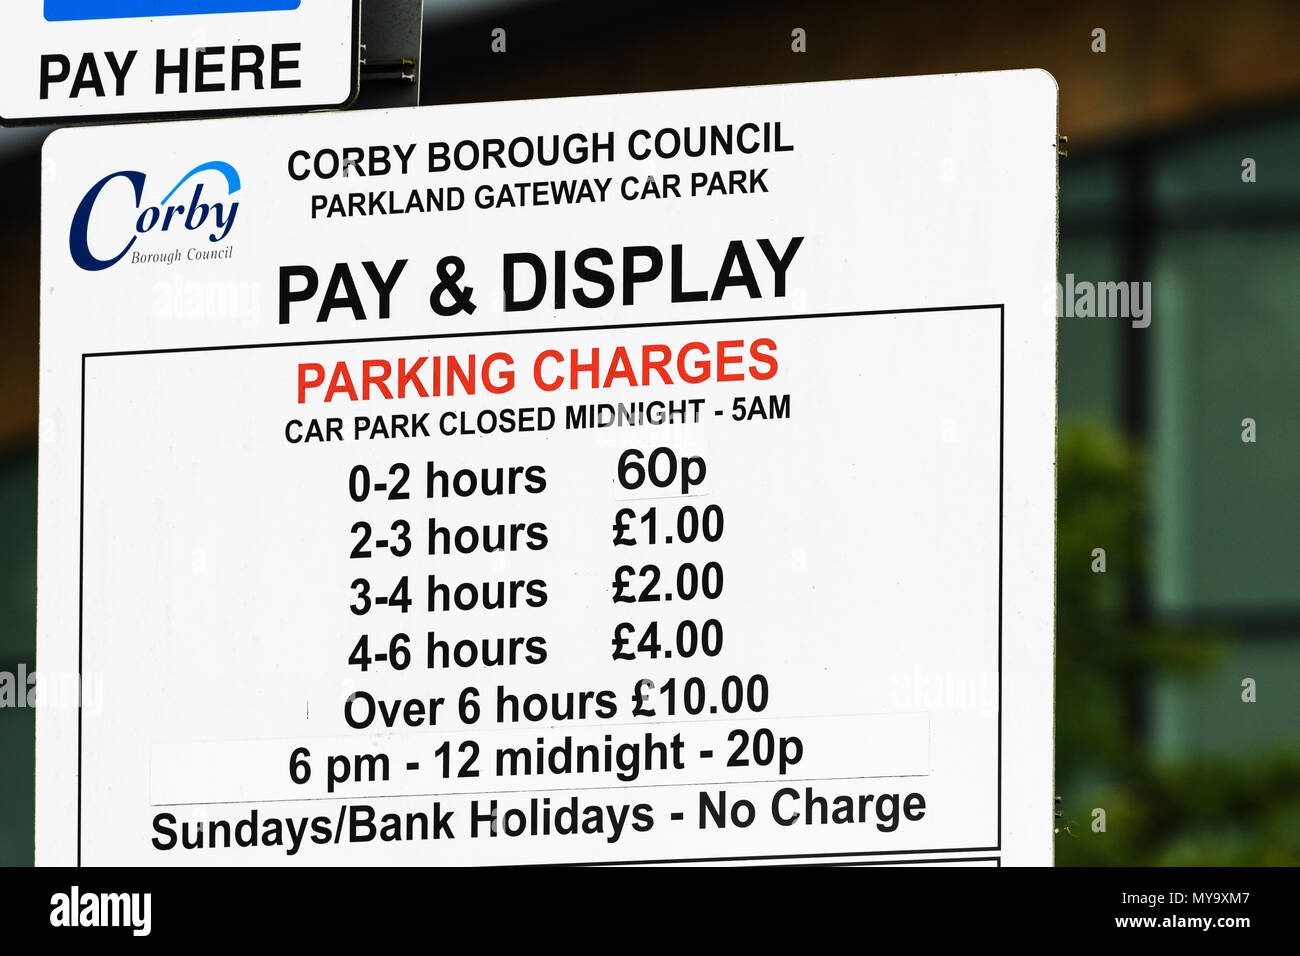 Car park pay and display parking charges notice outside the Cube in the town of Corby, Northamptonshire, England. - Stock Image